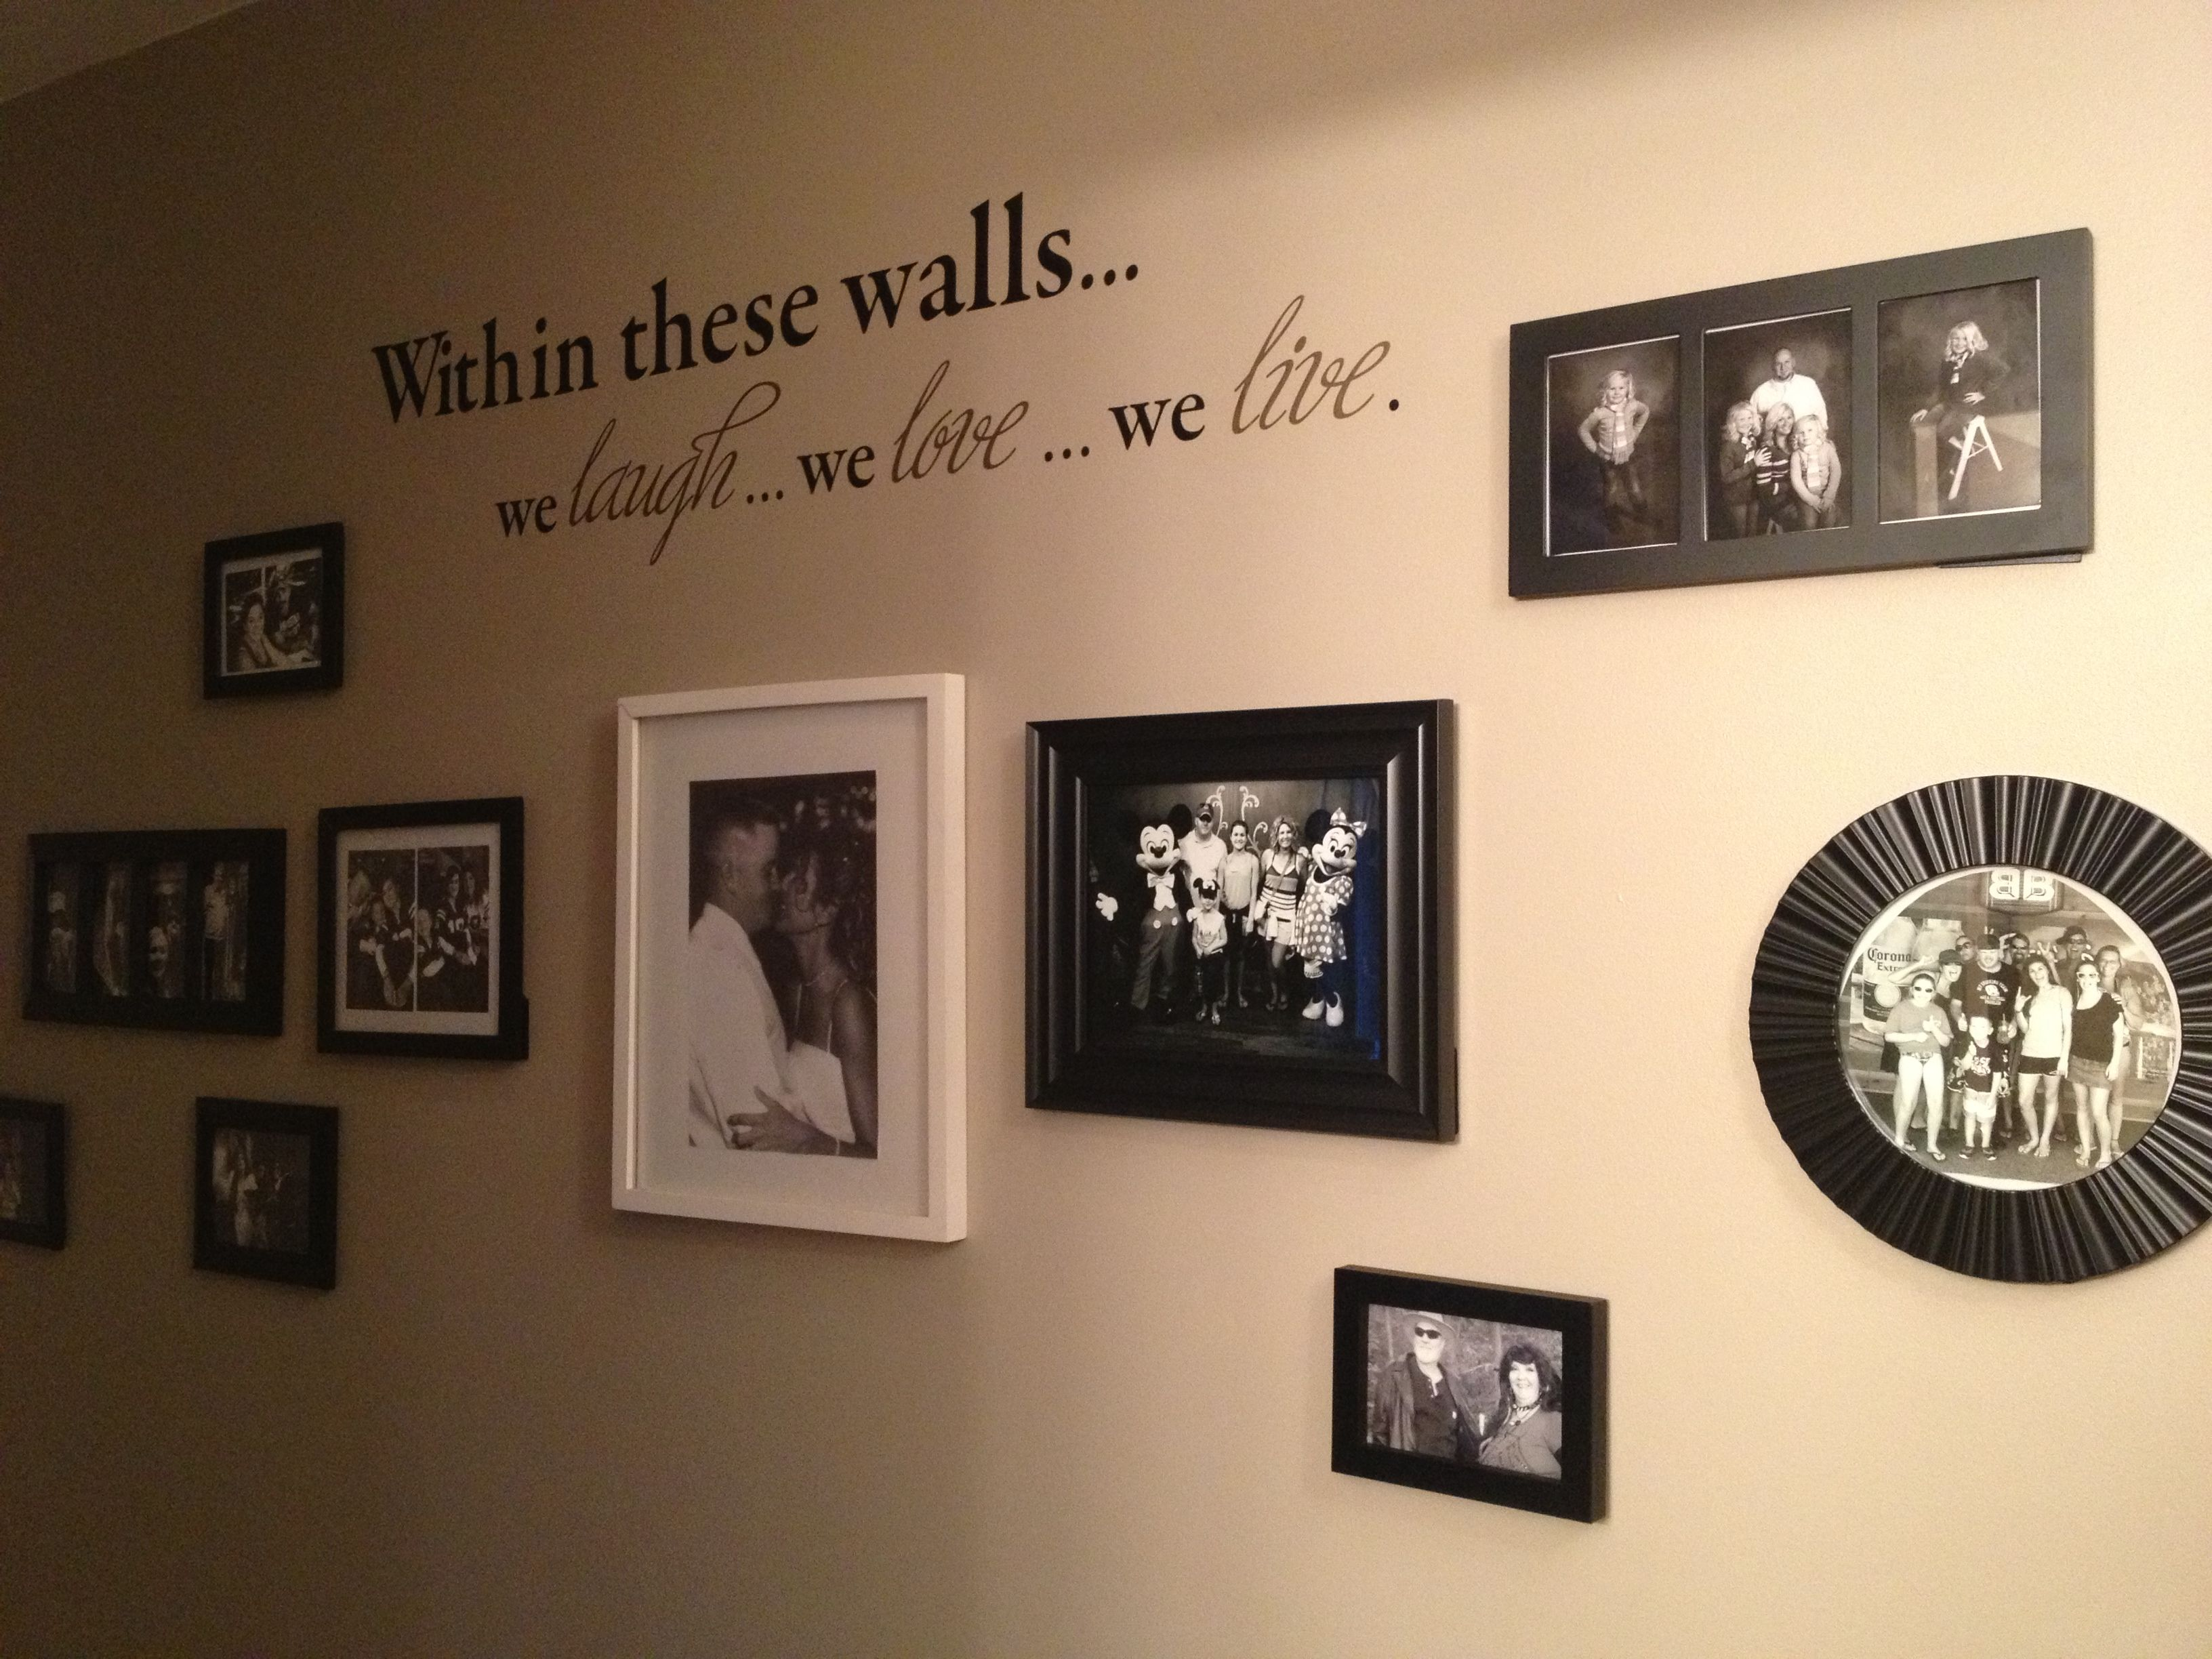 Pinterest Wall Decor: My Latest Pinterest Project!